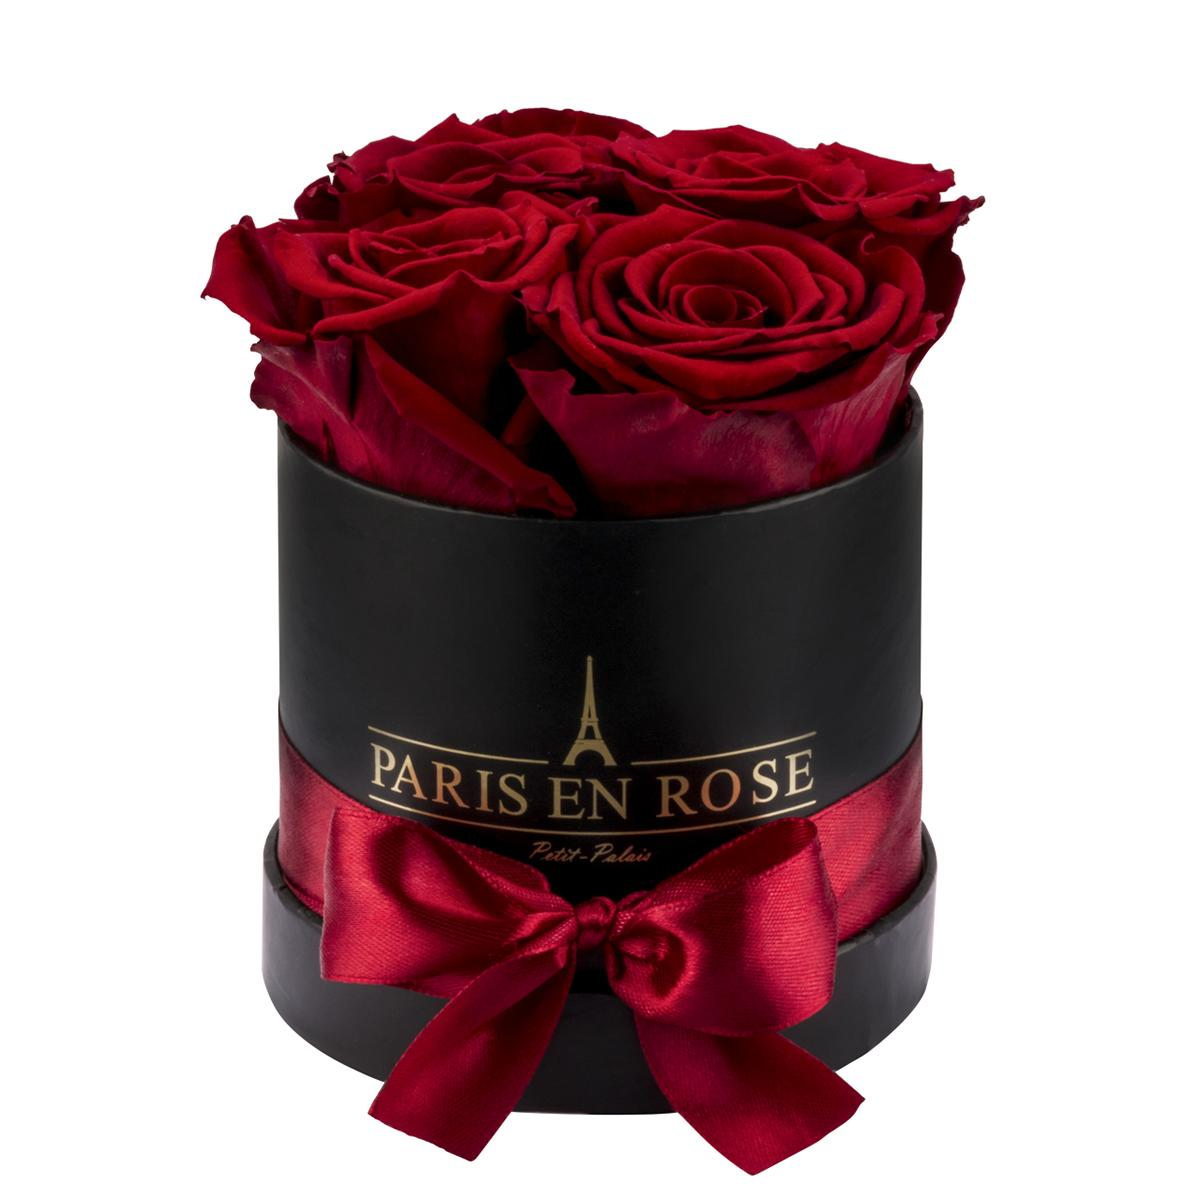 Rose box Petit-Palais with preserved roses